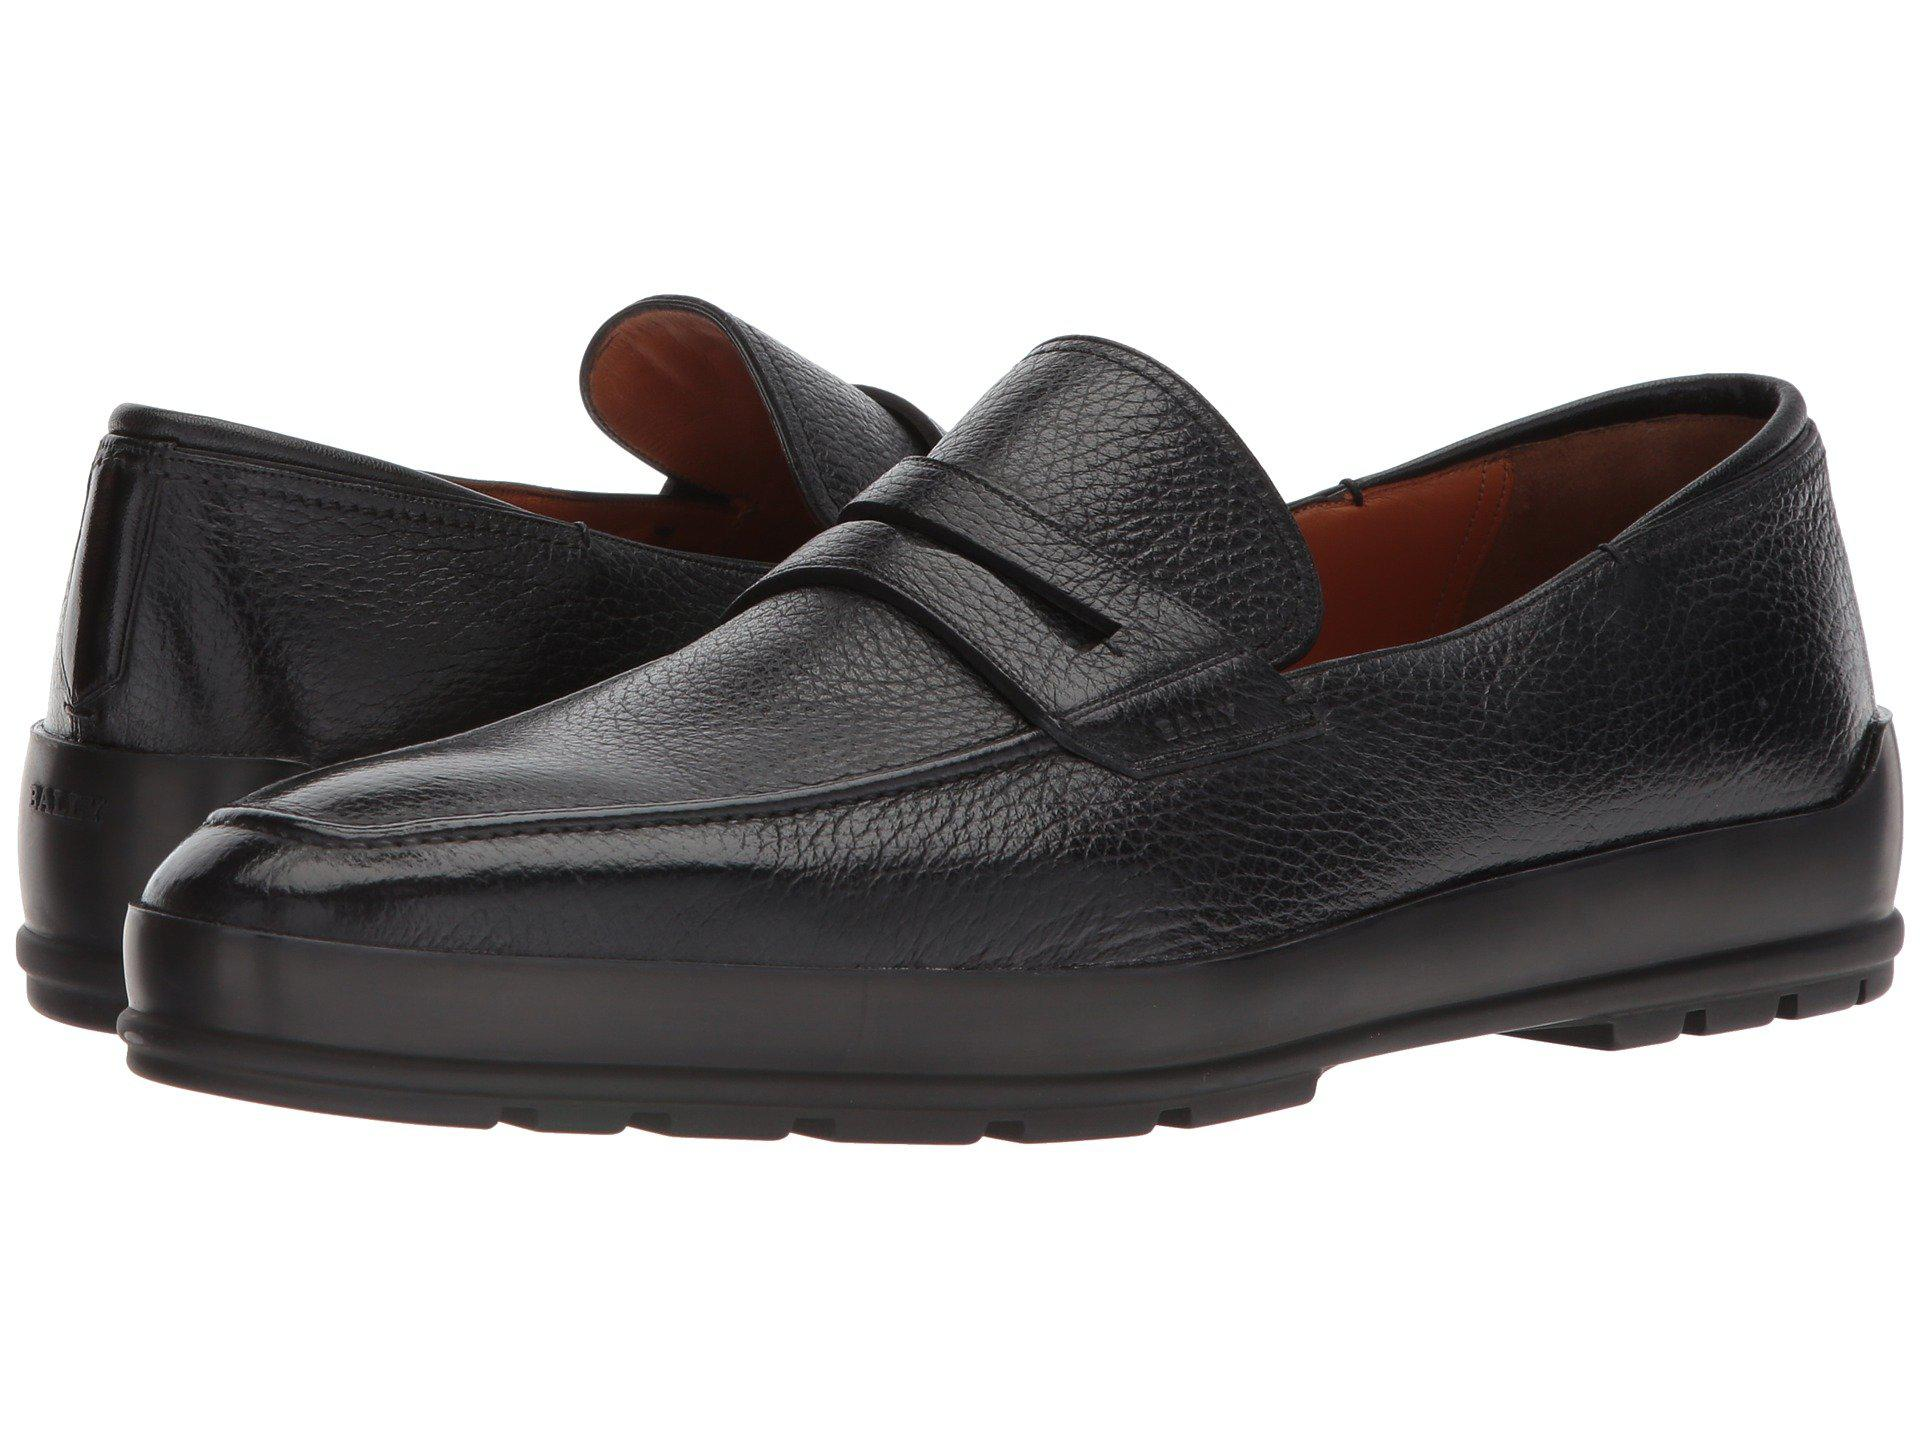 a456f947354 Lyst - Bally Relon City Penny Loafer in Black for Men